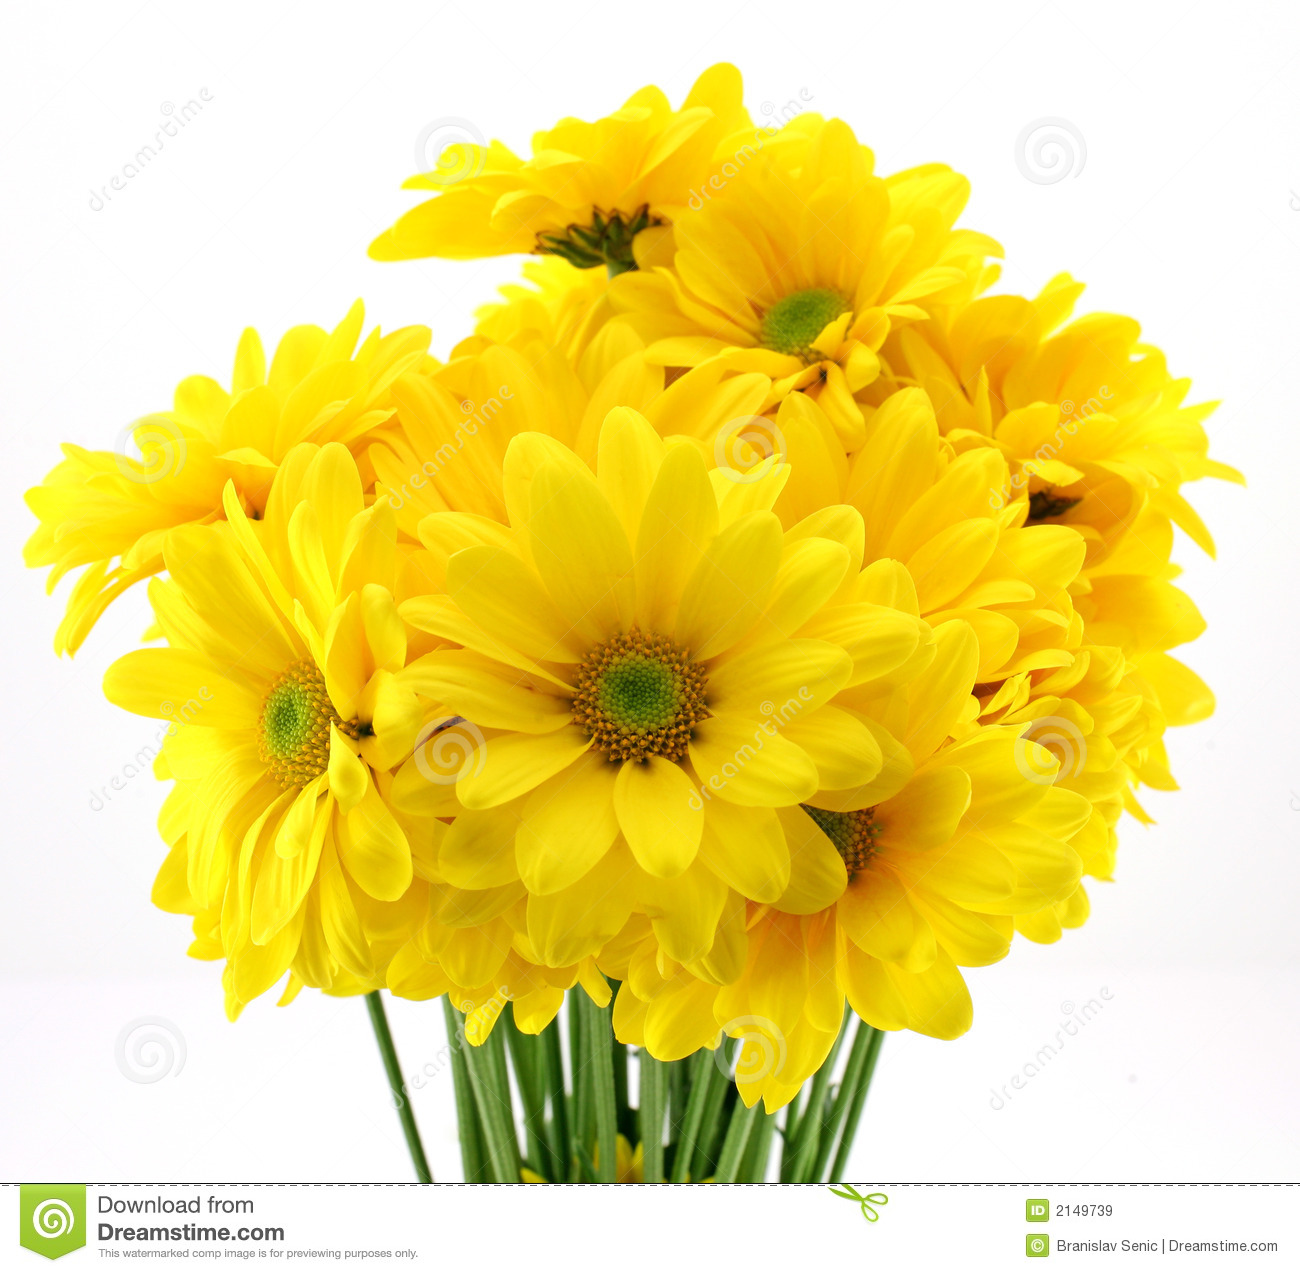 yellow flowers images.